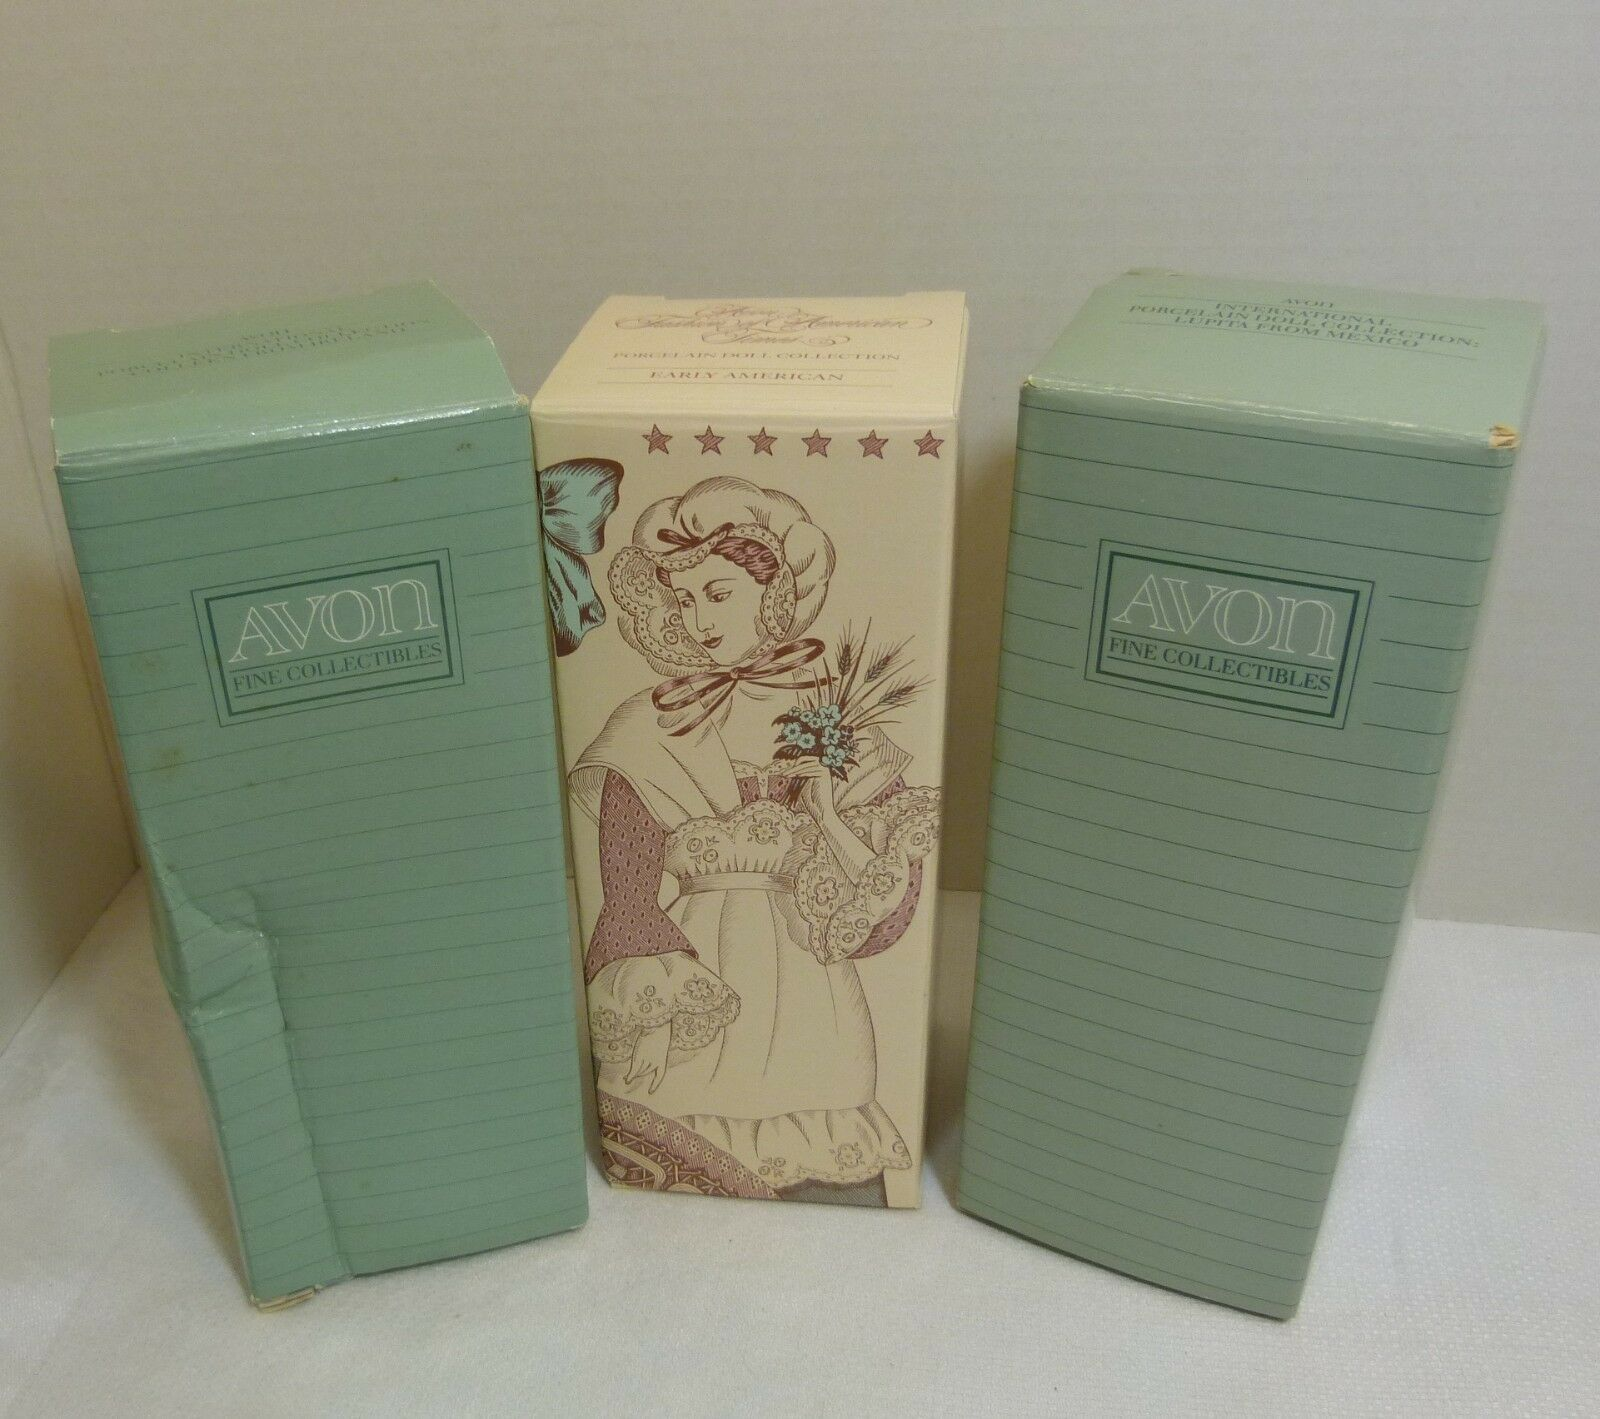 Avon Porcelain Doll Collection Lot of 3: and 50 similar items